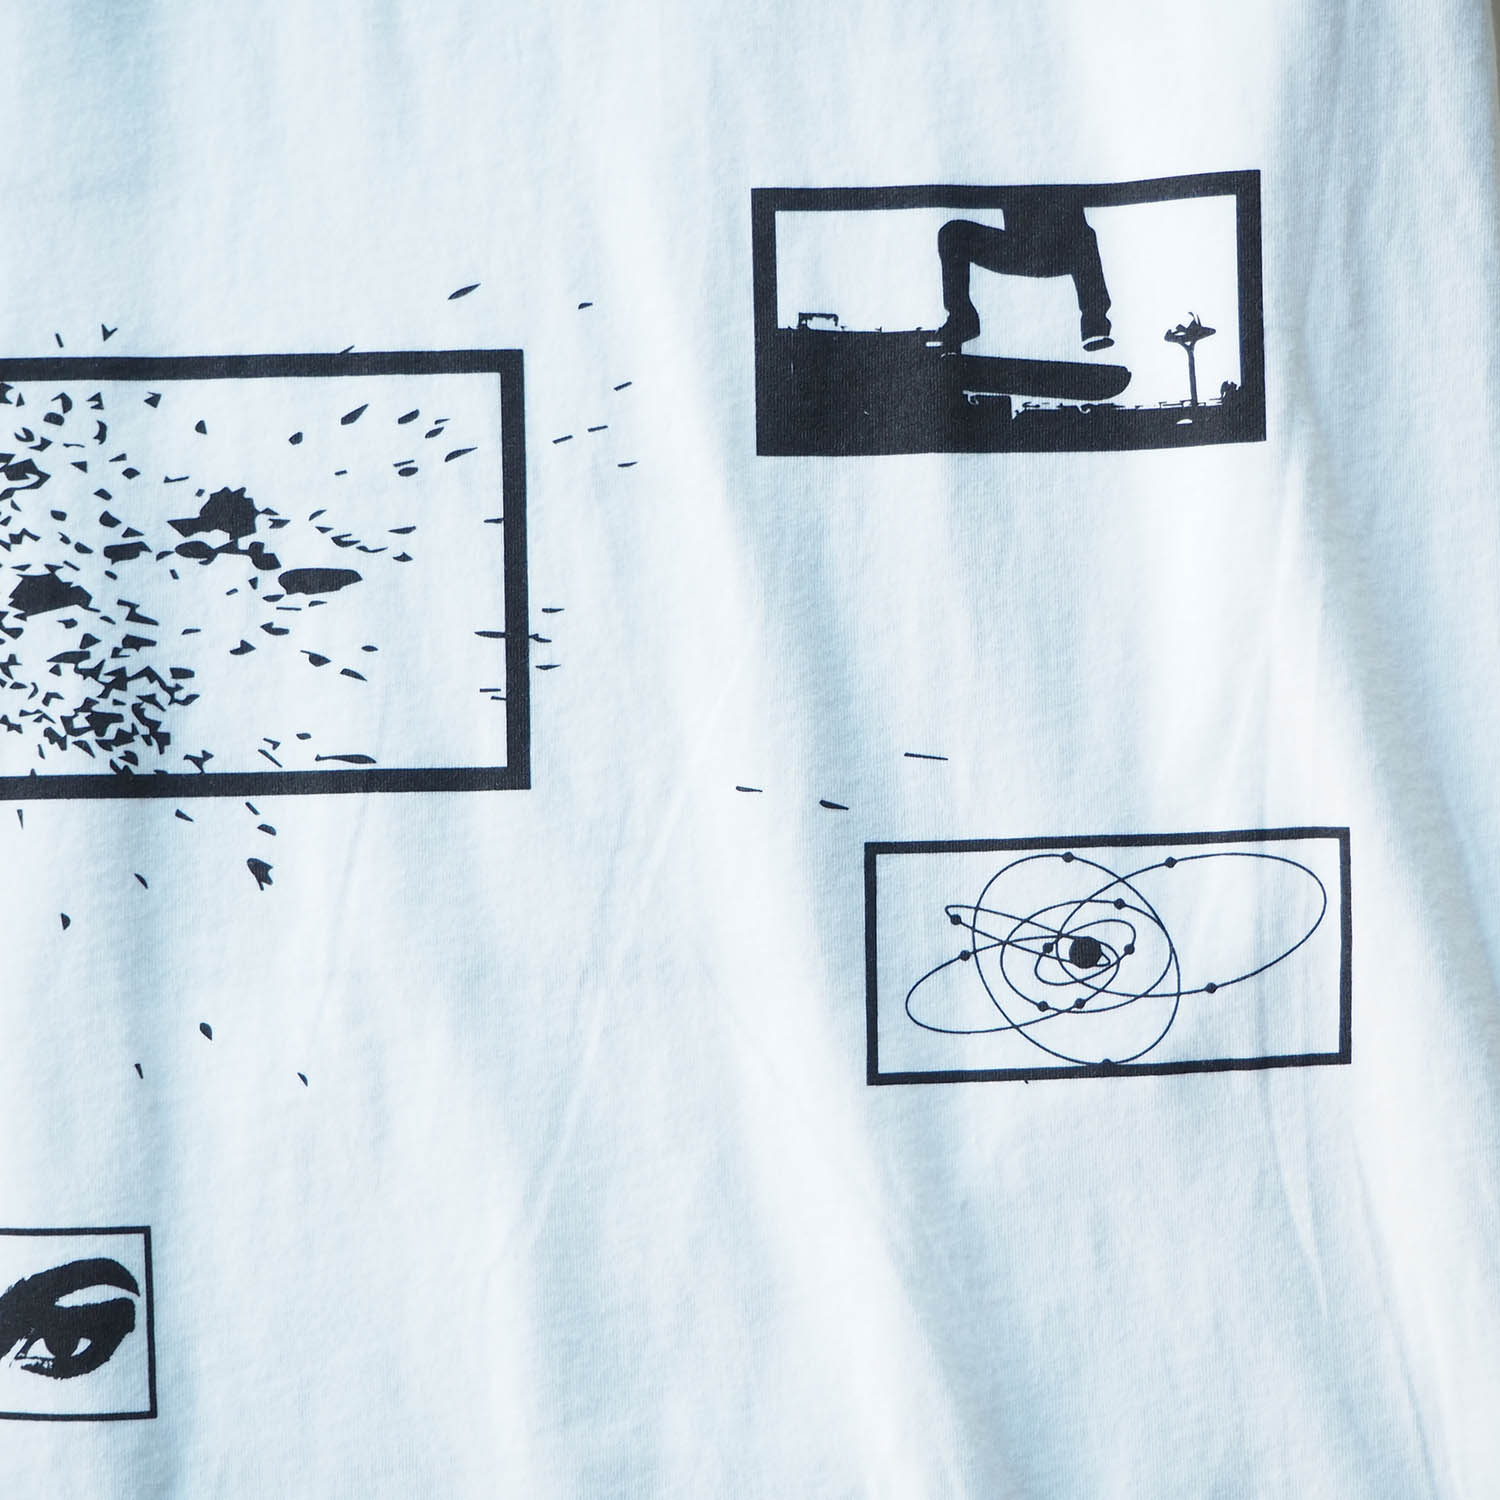 am / after midnight nyc エーエム アフターミッドナイト ABSTRACT TEE プリントTシャツ ホワイト